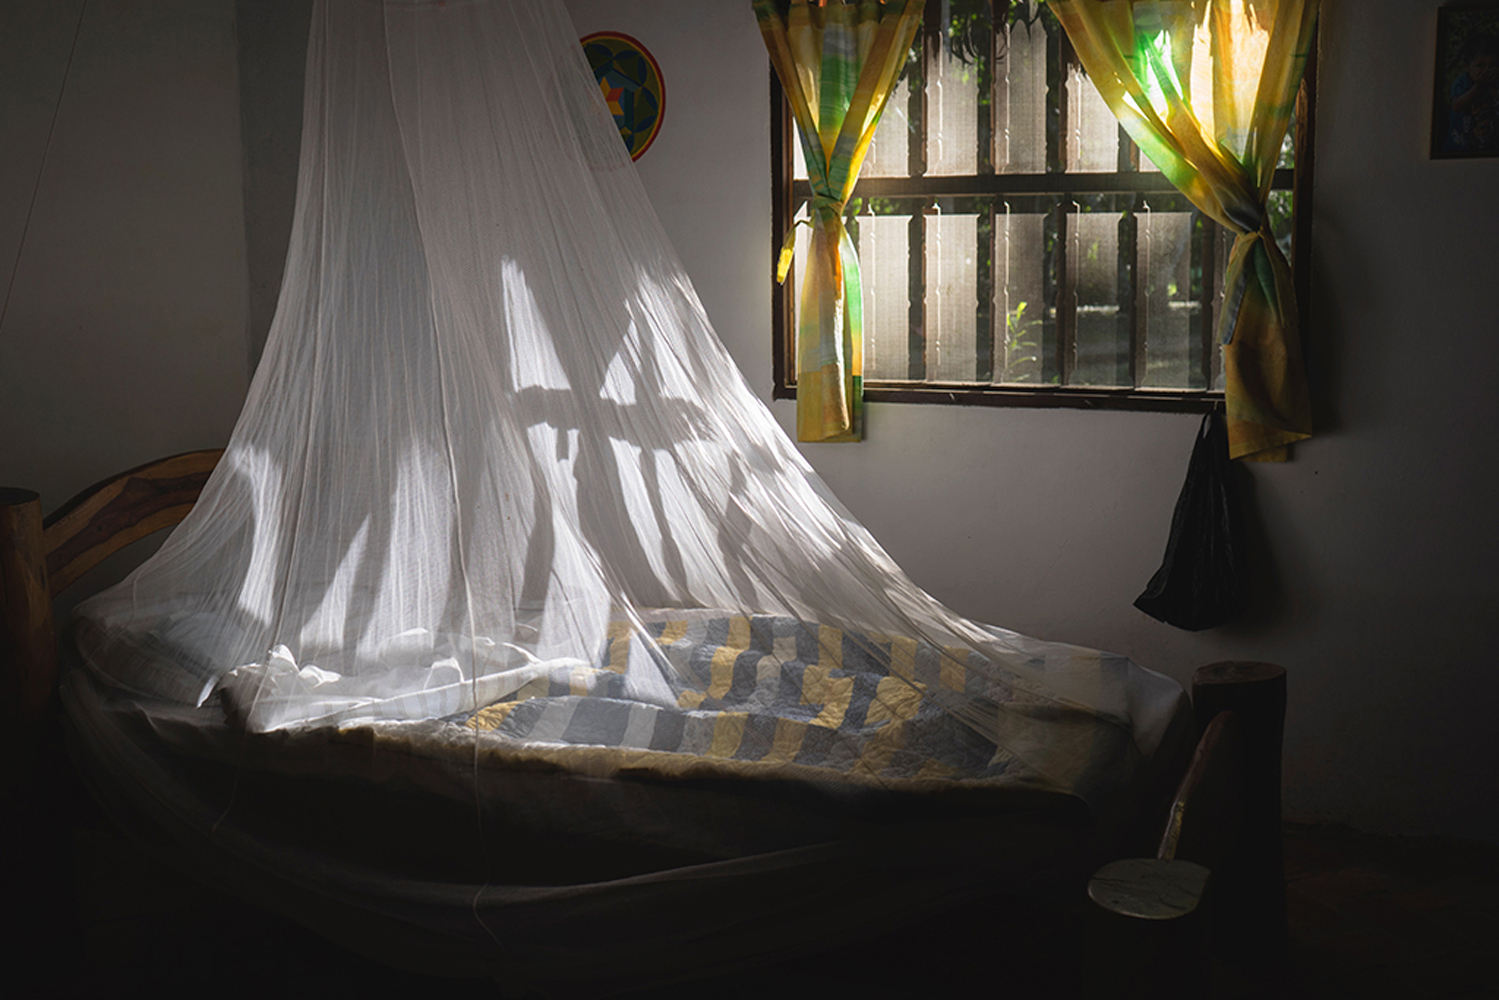 Bed draped with mosquito netting.